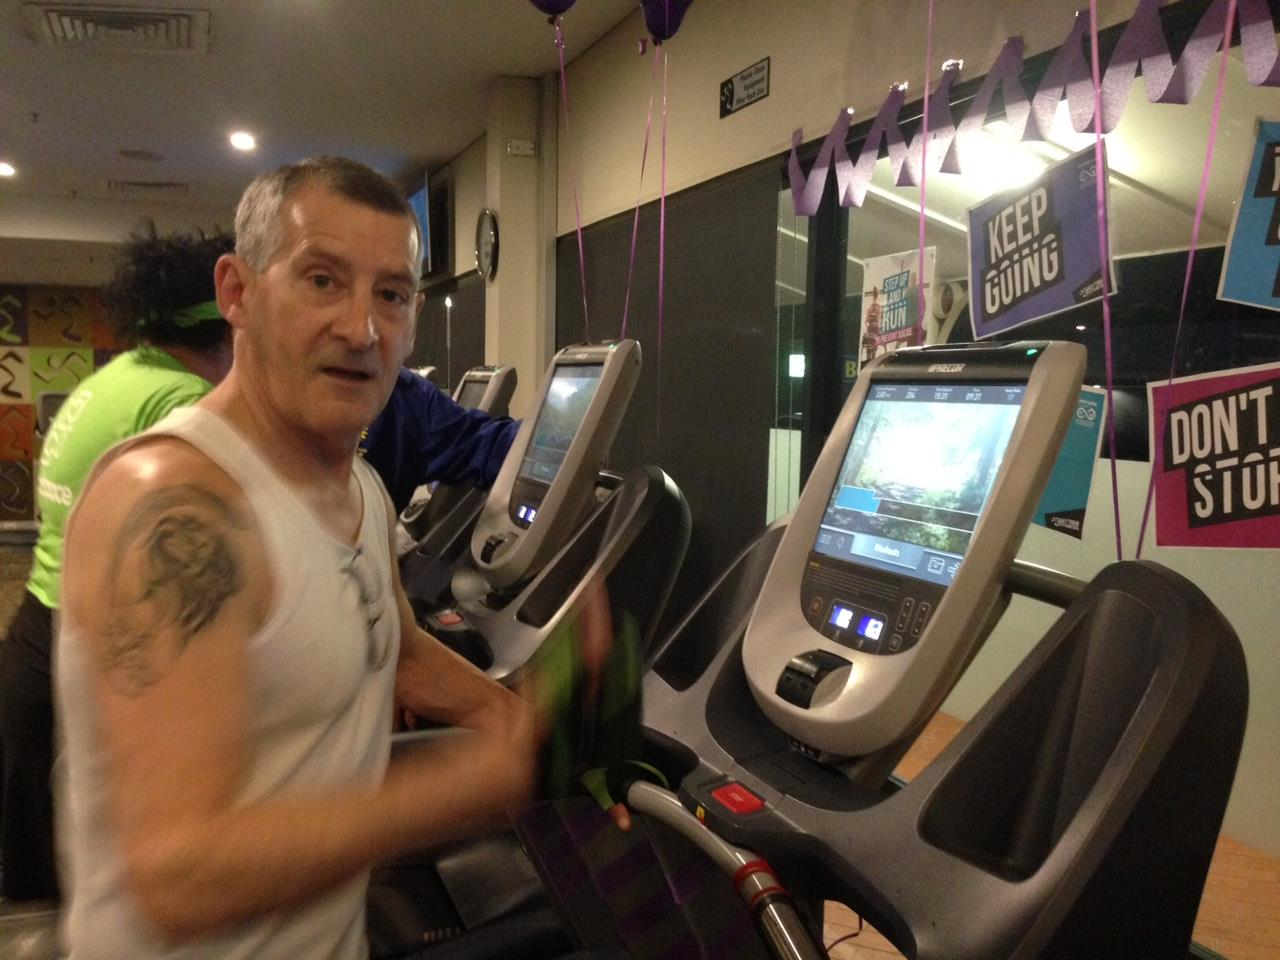 Peter at the Anytime Fitness run-a-thon